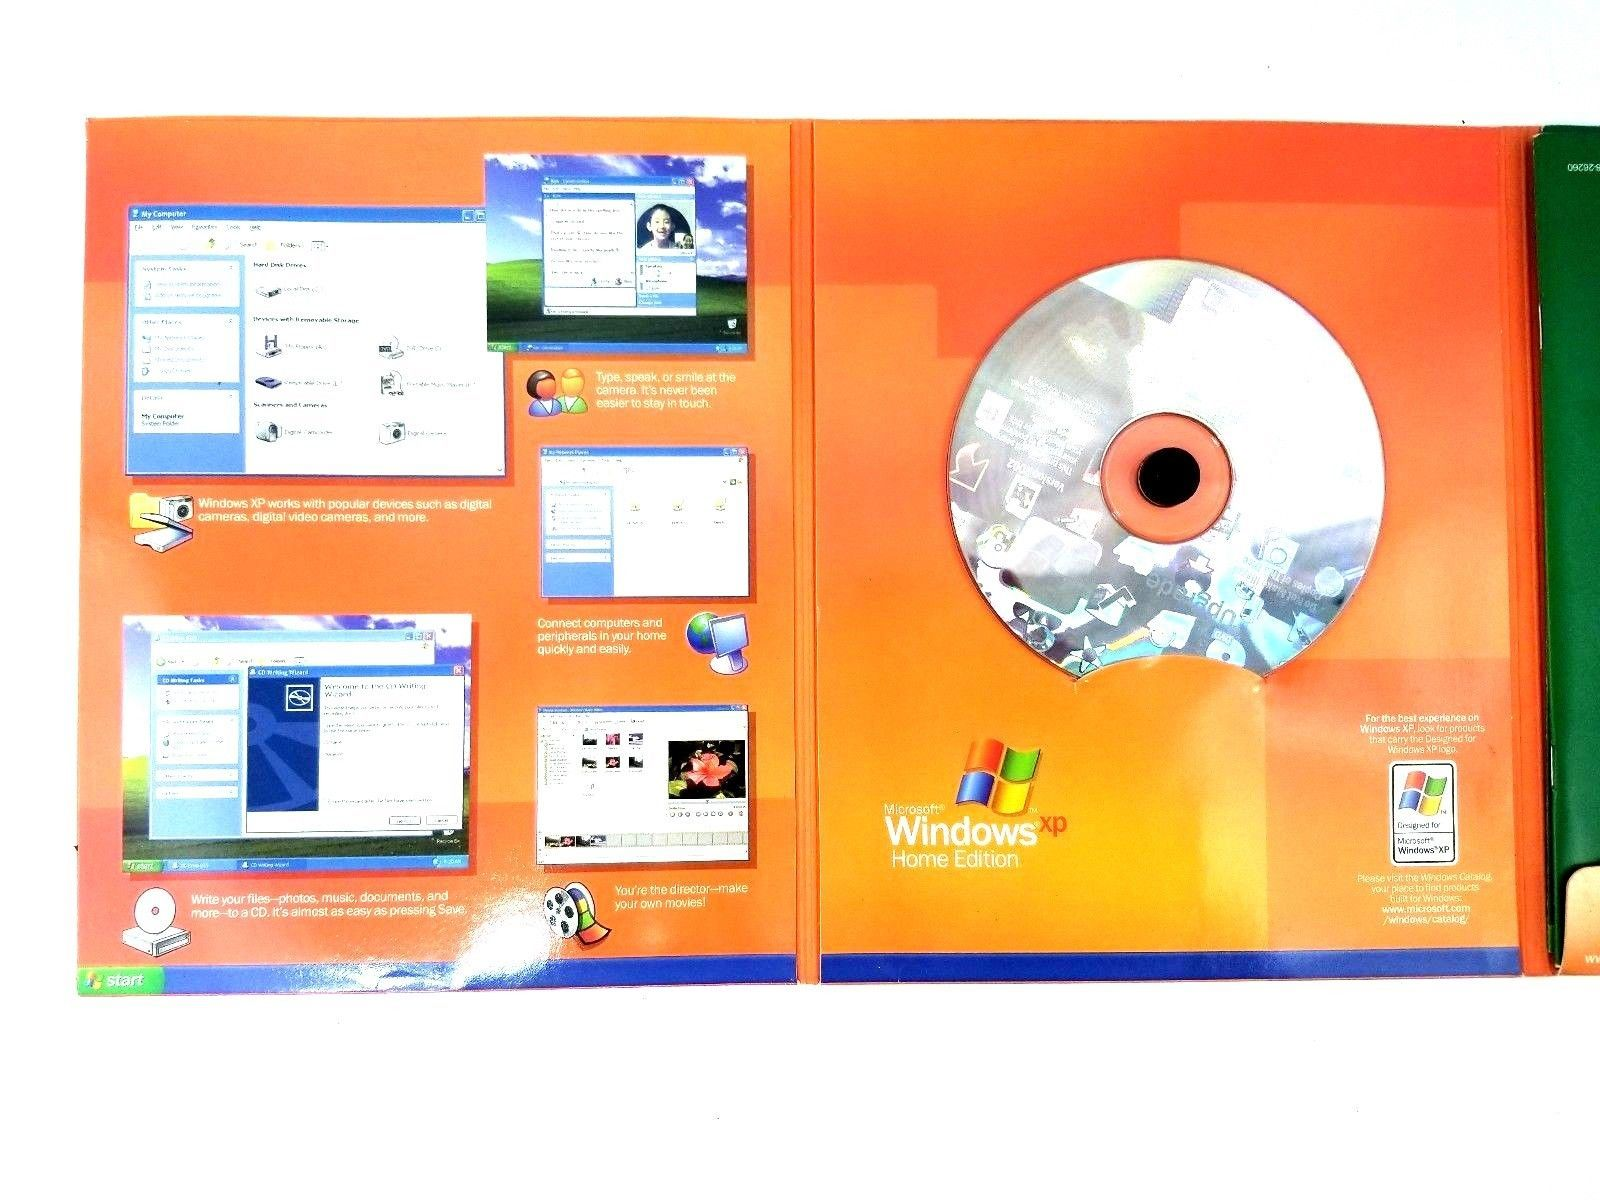 Microsoft WINDOWS XP HOME EDITION Upgrade Version 2002 Software w/ Product Key